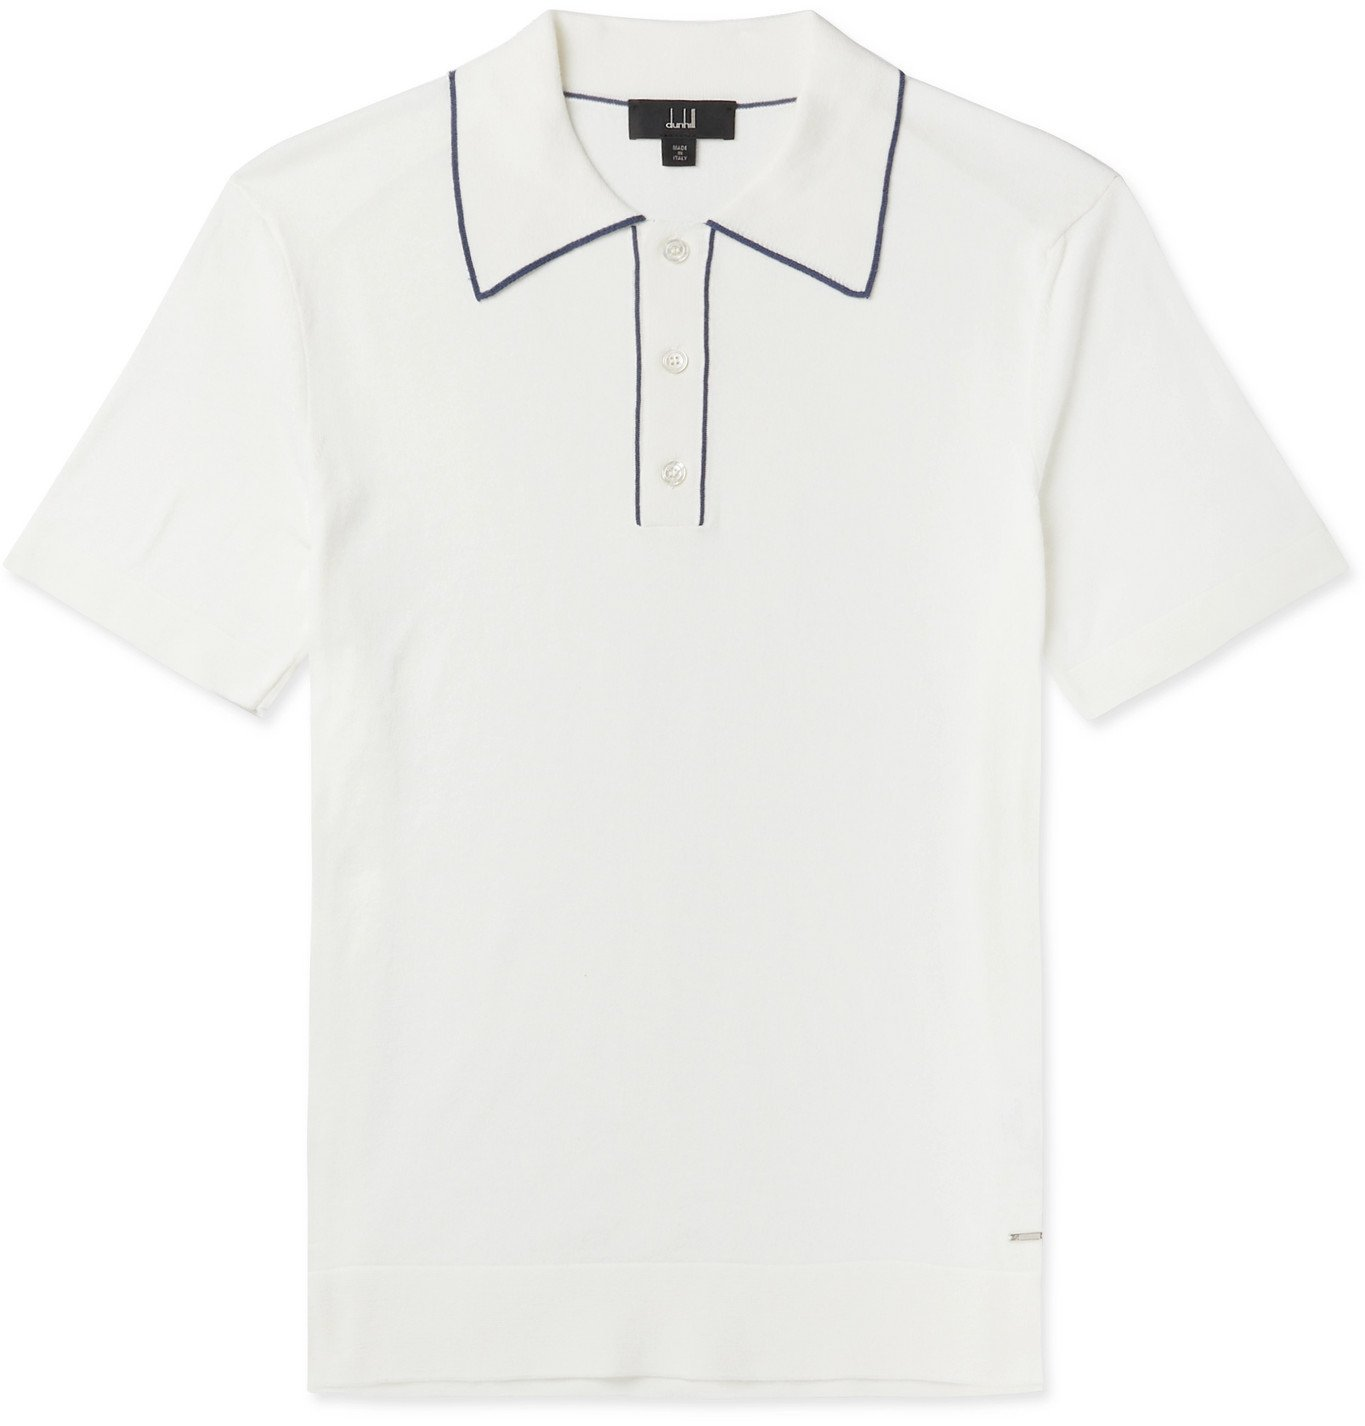 Dunhill - Contrast-Tipped Pima Cotton-Jersey Polo Shirt - White